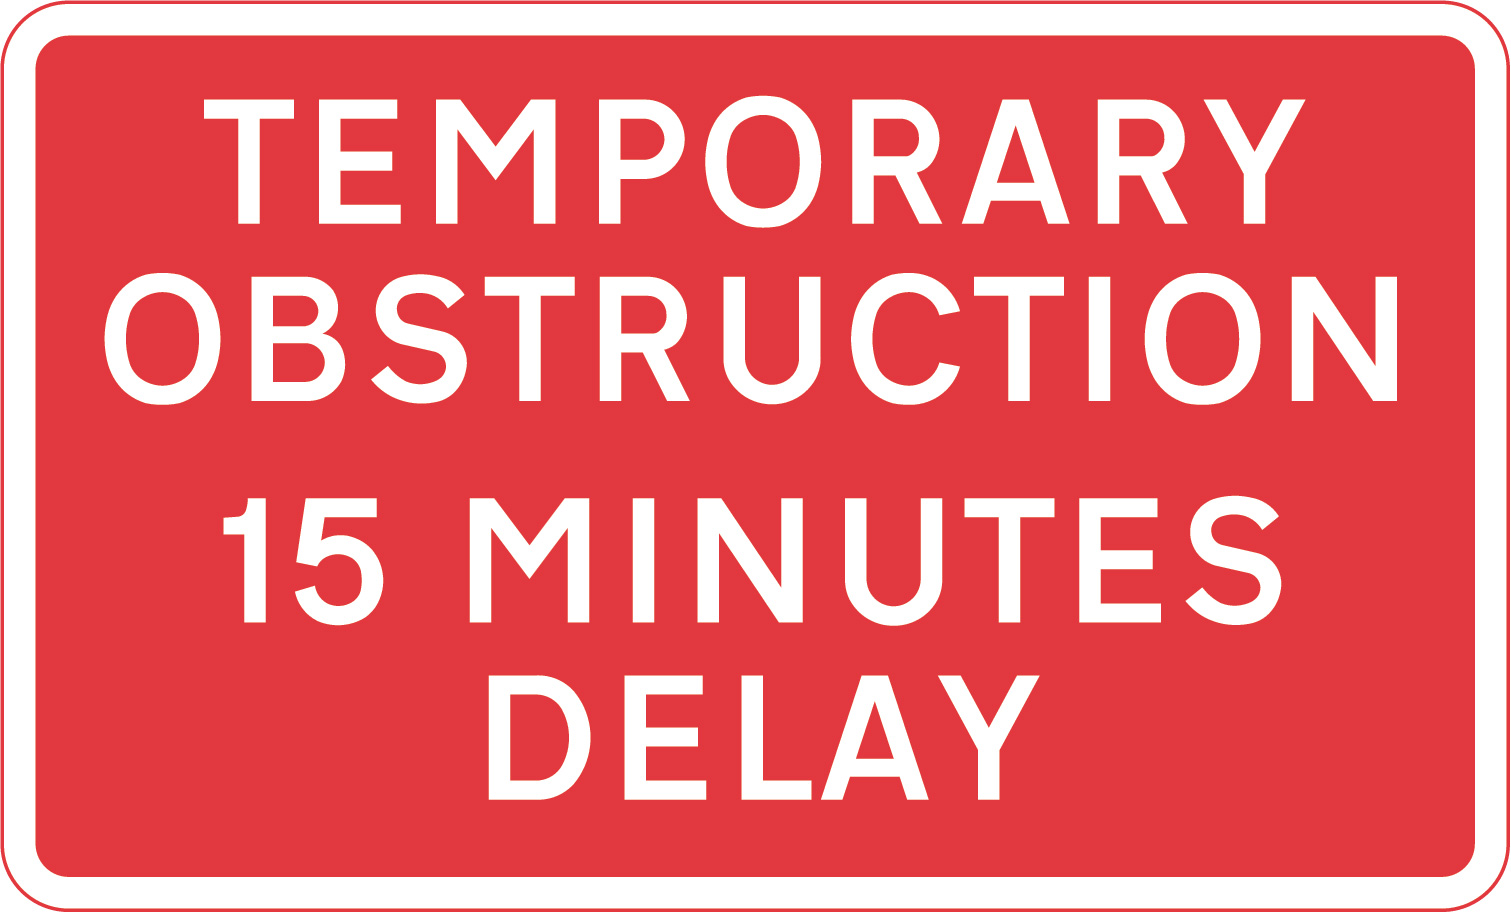 Temporary obstruction 15 minutes delay sign